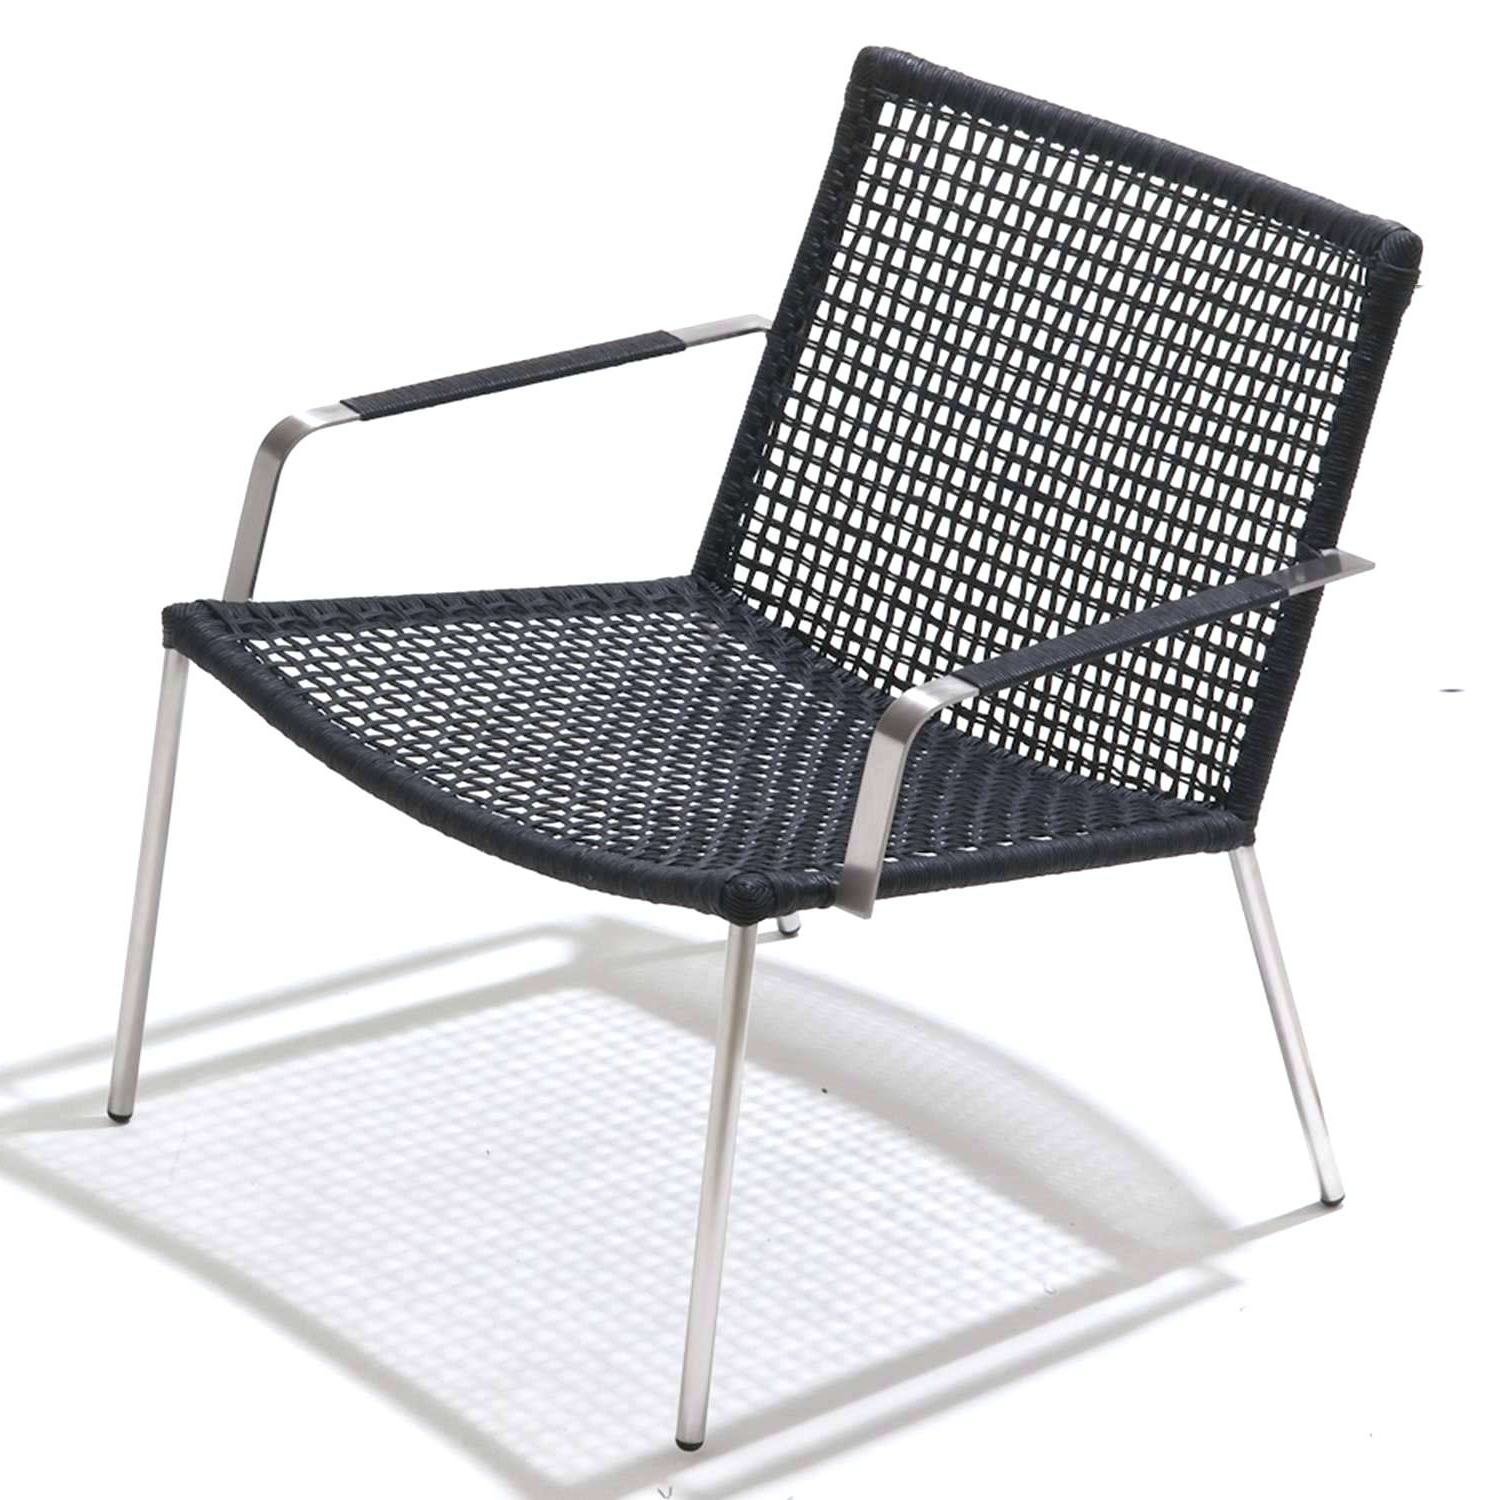 Convertible Chair : Lounge Chairs Best Rated Outdoor Chaise Lounge With Regard To Well Known Portable Outdoor Chaise Lounge Chairs (View 1 of 15)